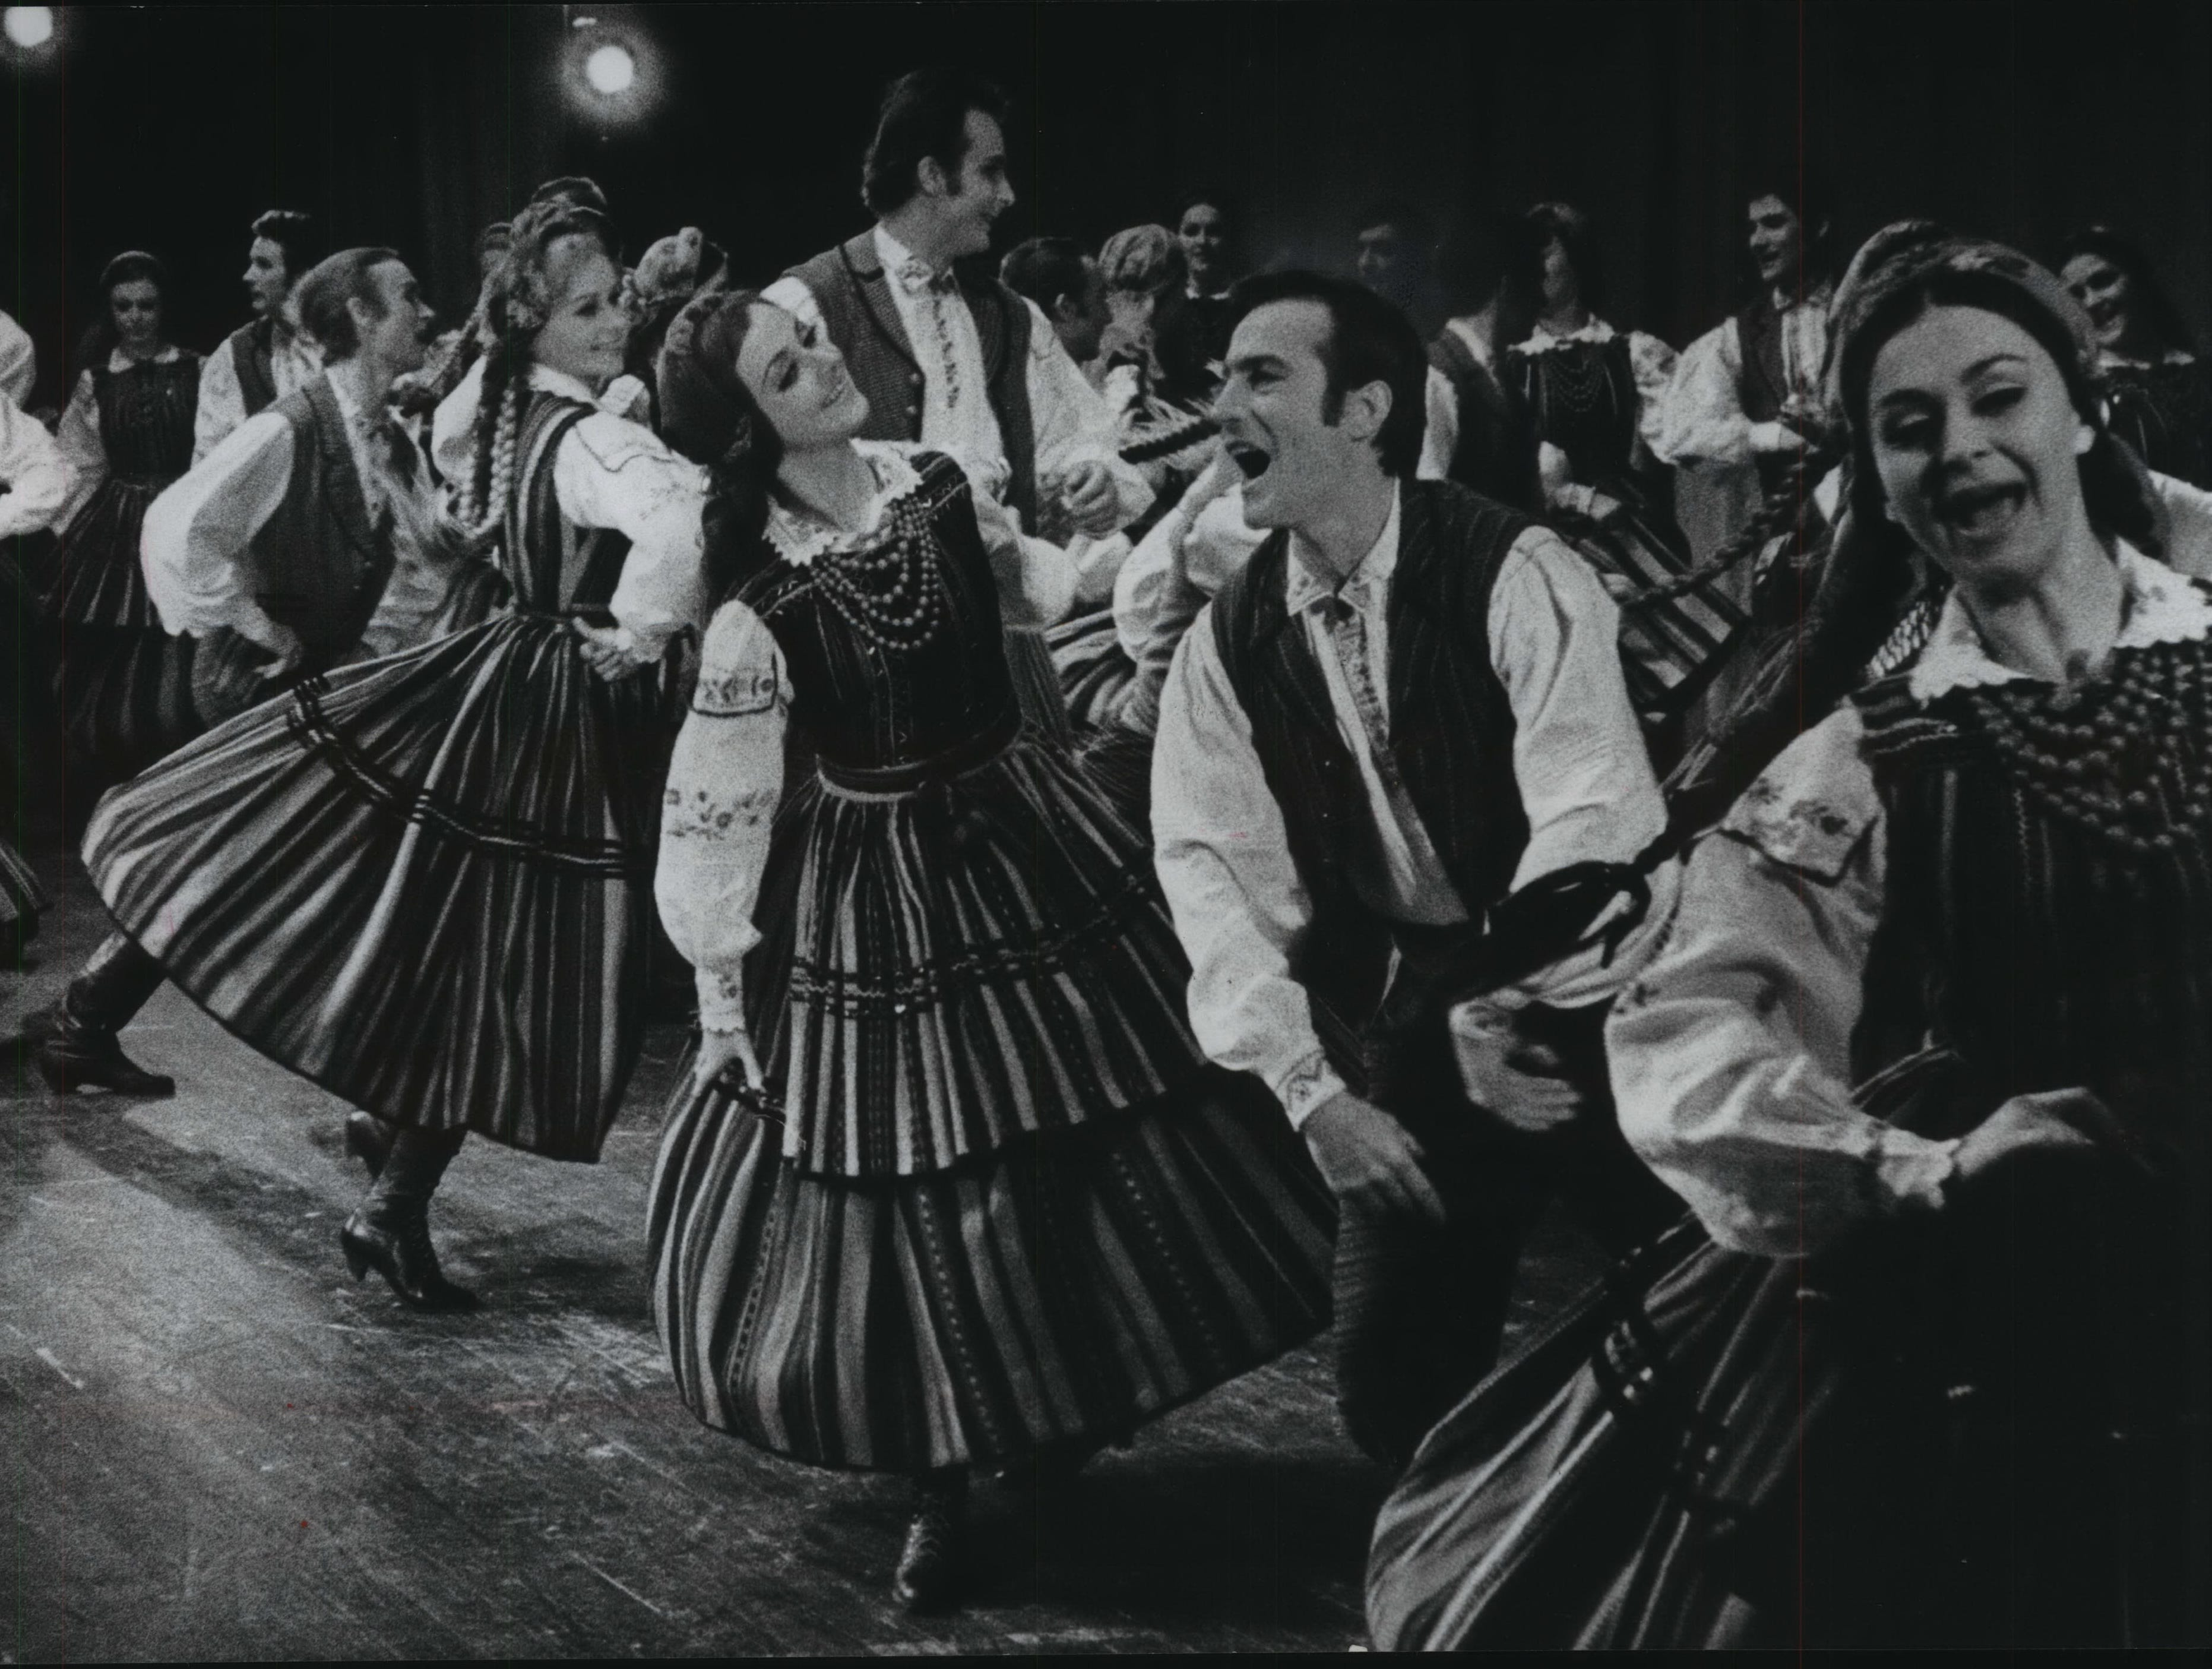 Evening Delight - Members of Mazowsze, Poland's national song and dance company, whirled through a number Wednesday in the Performing Arts Center in Milwaukee, Wisconsin.  The appearance was sponsored by the Distinguished Concerts Guild. (Story on Page 10.)